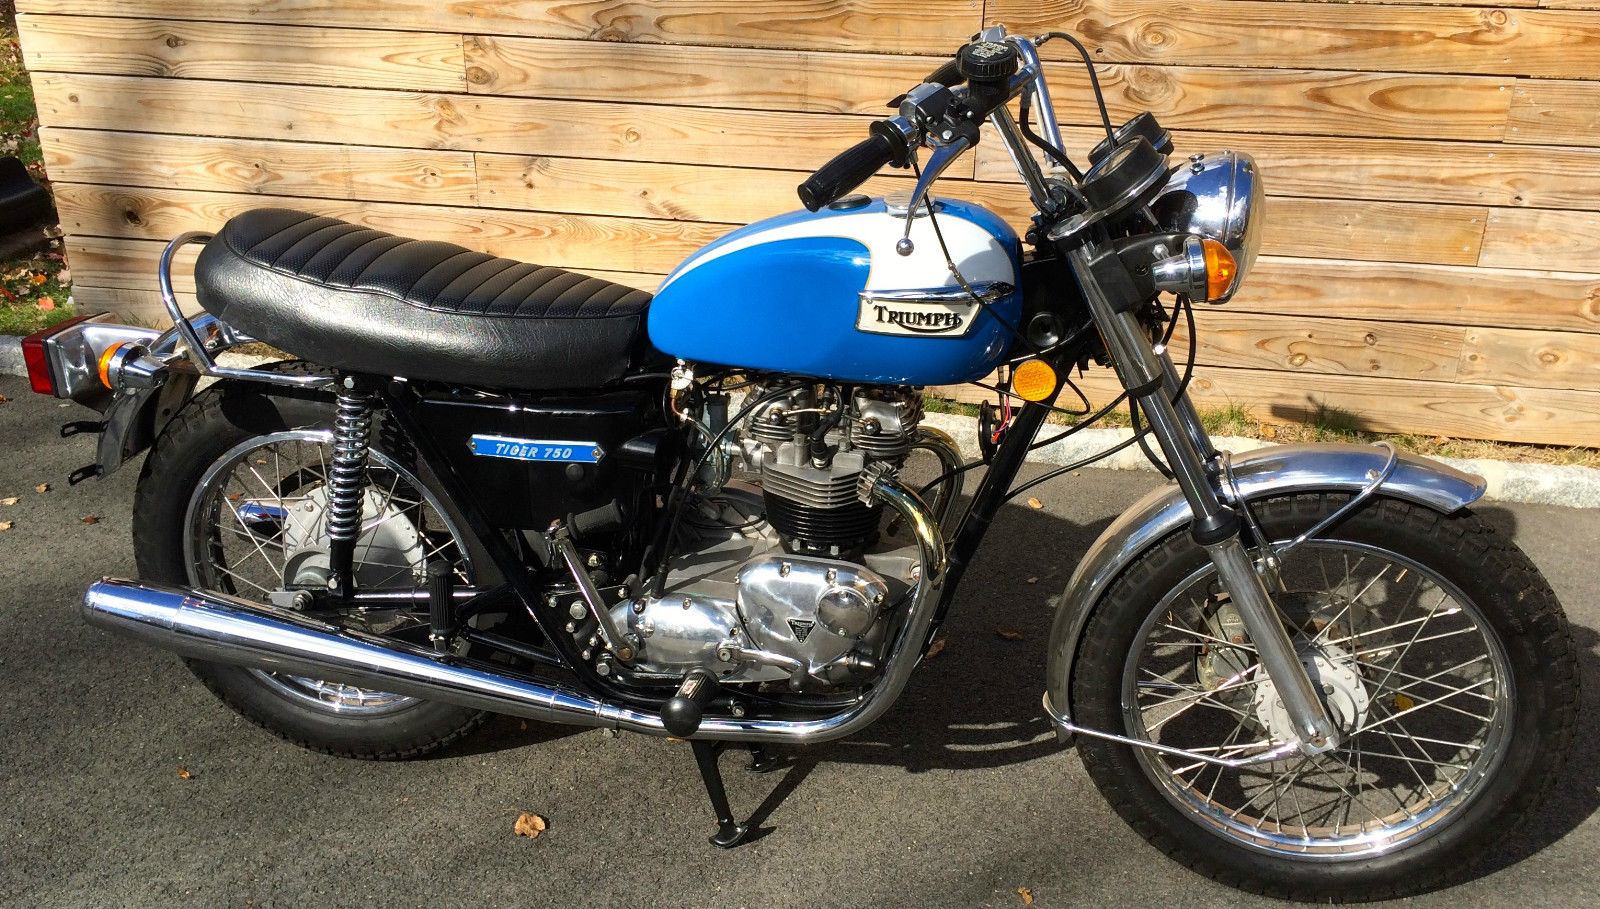 Triumph Tiger - 1973 - Right Side View, Engine and Gearbox, Fuel Tank, Seat and Frame.